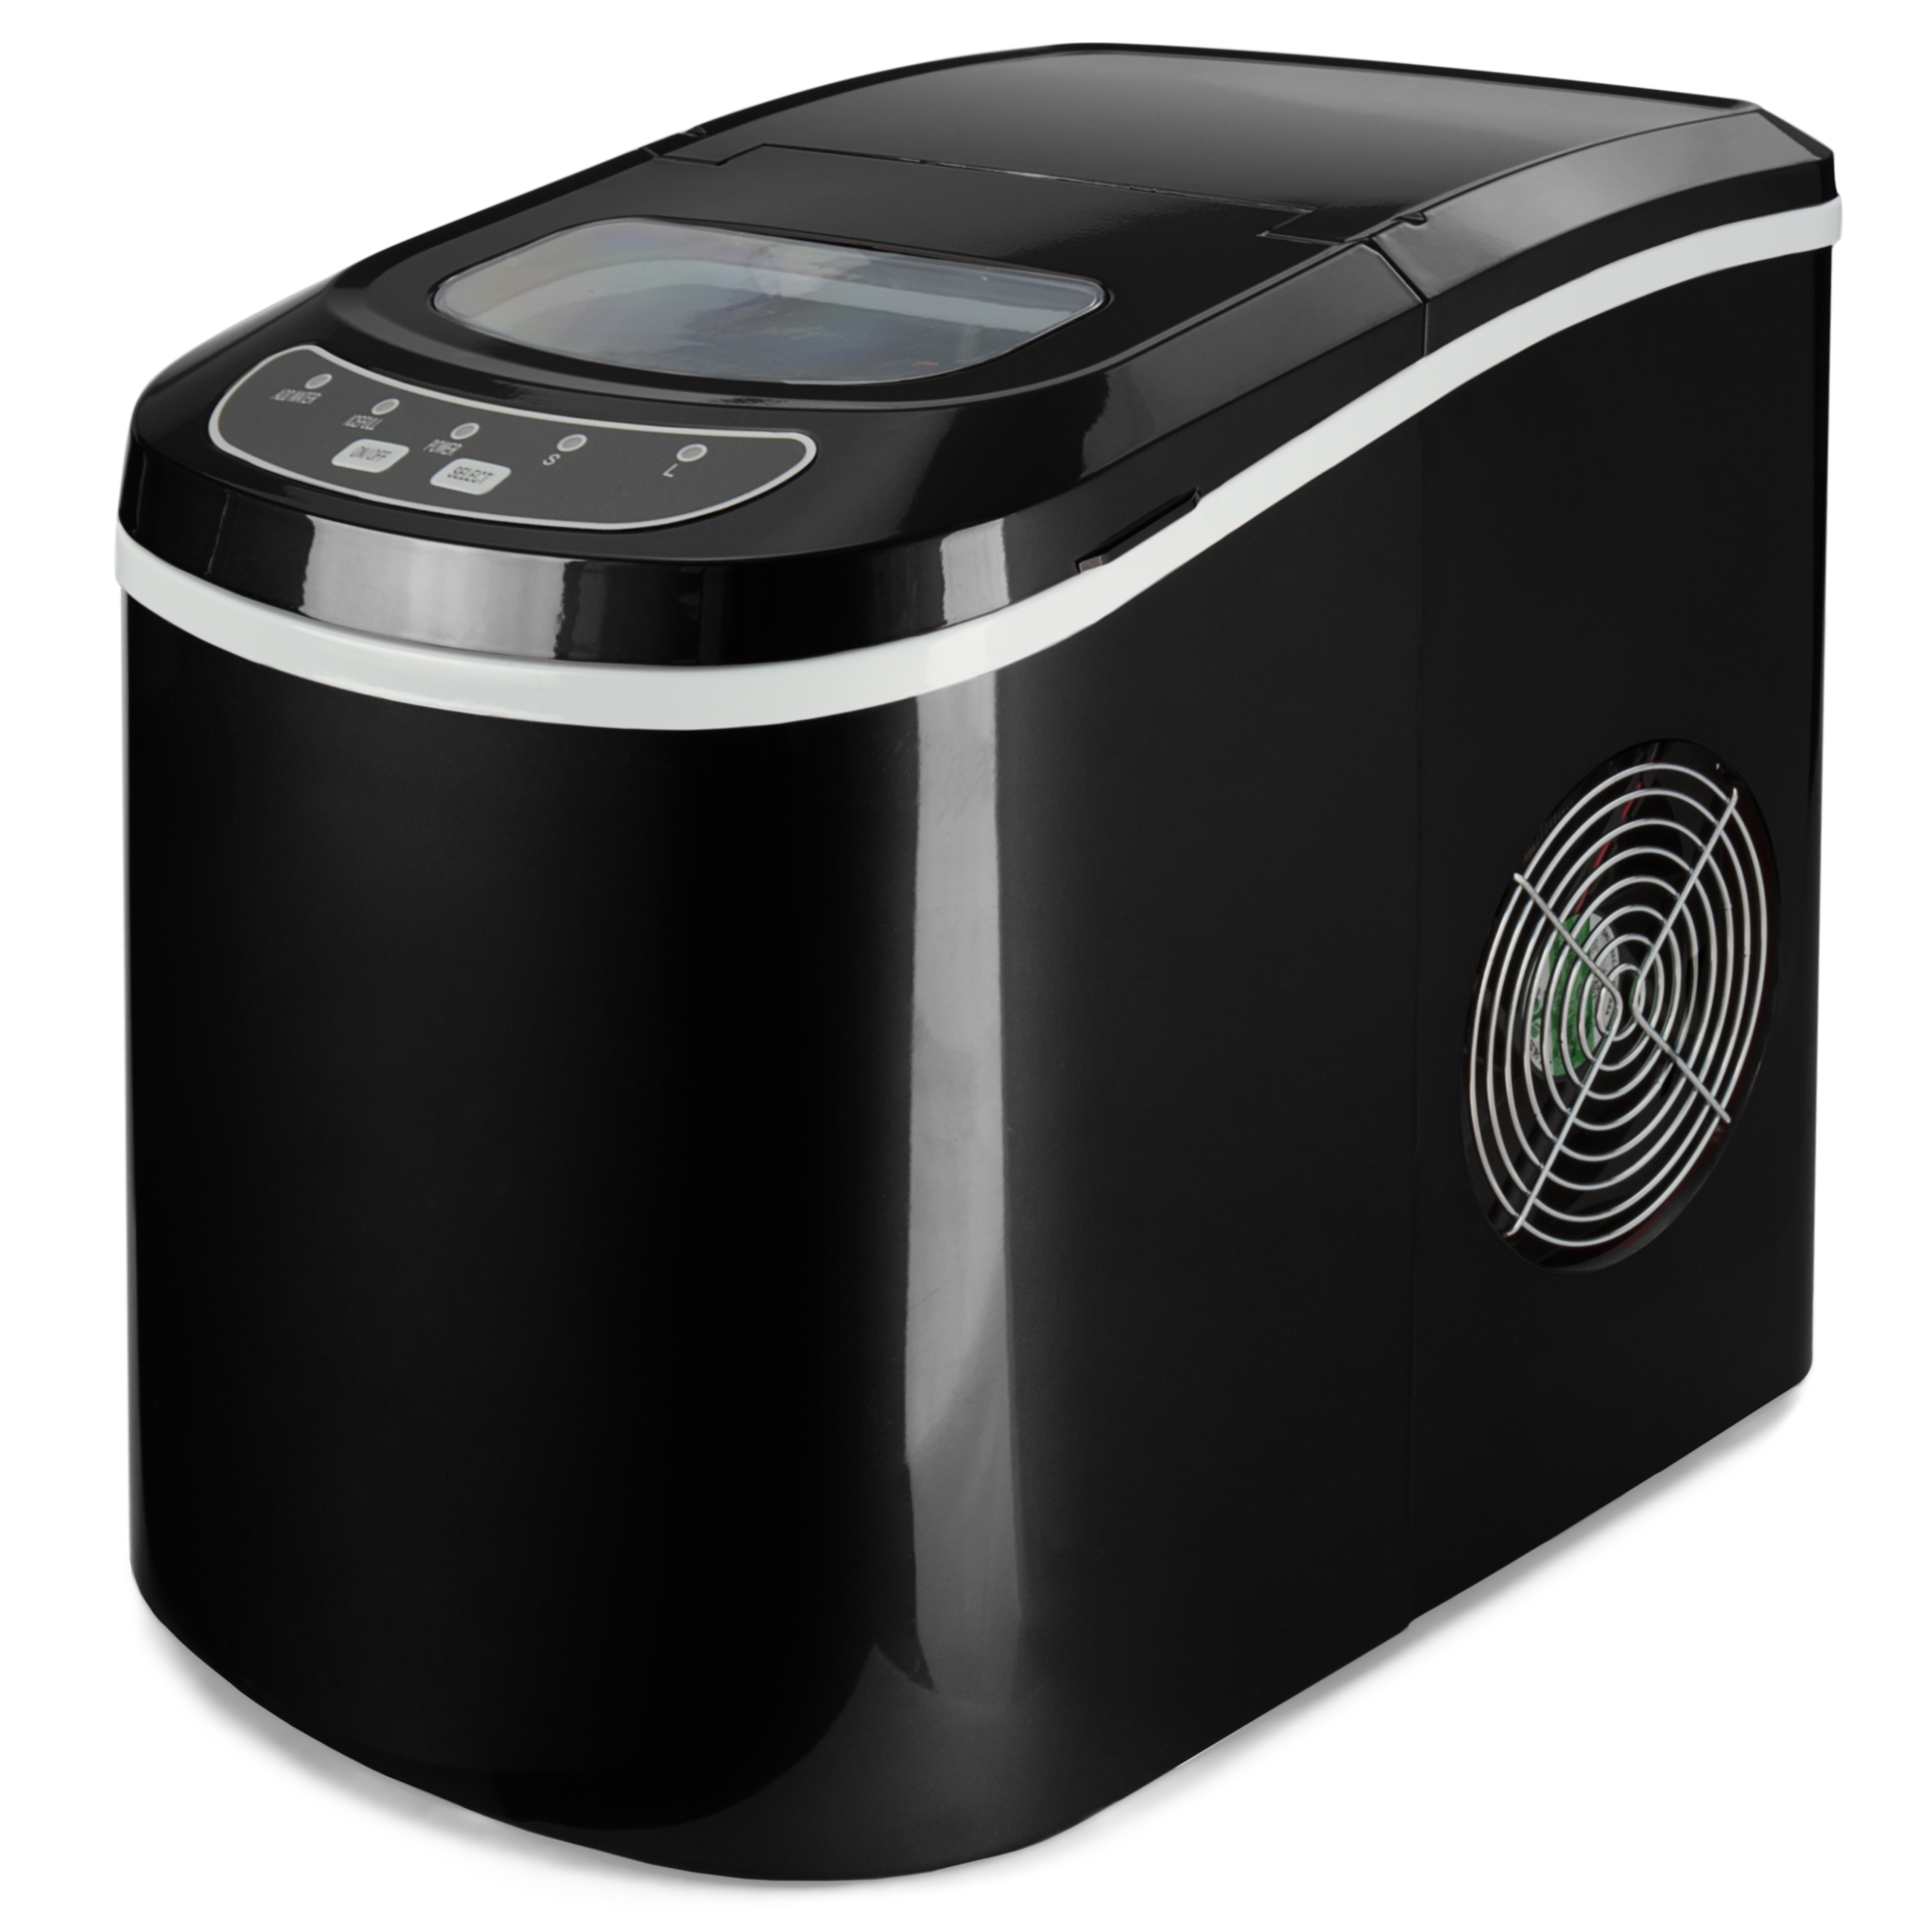 Best Choice Products Compact Digital Ice Maker w/ 2 Cube Sizes (Black, 26 Lbs. of Ice Daily)